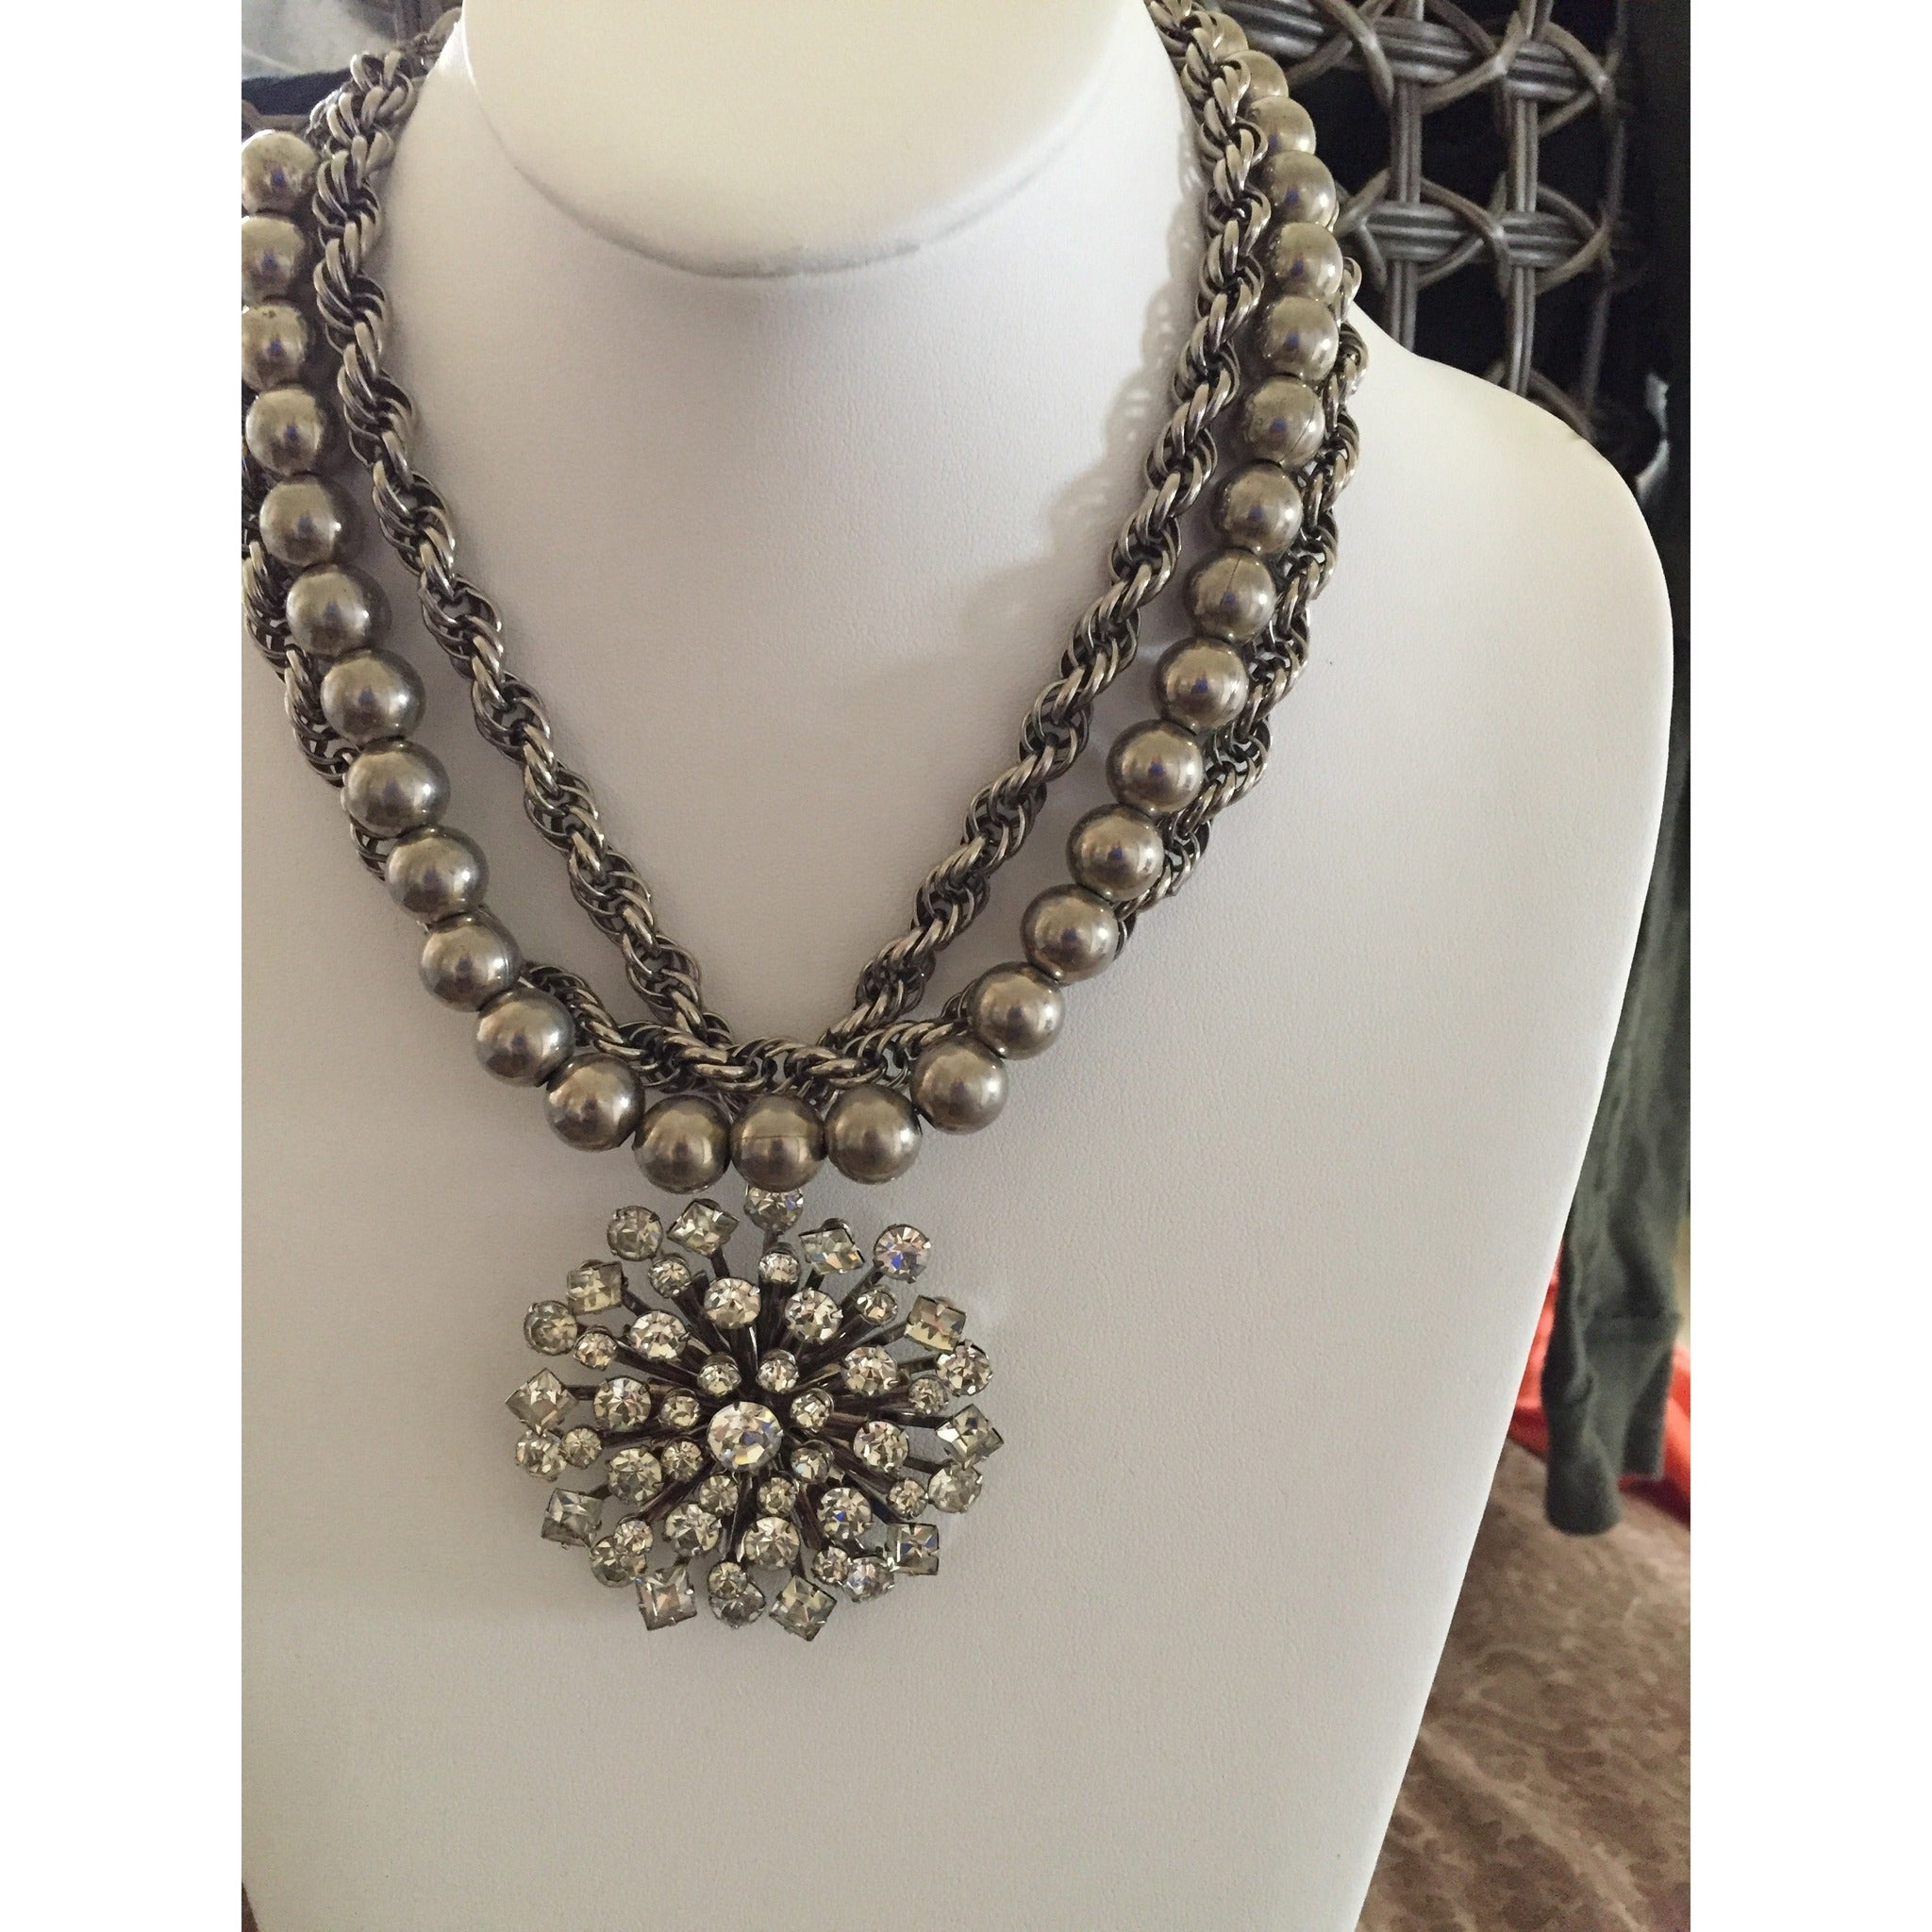 Vintage Crystal and silver Chain